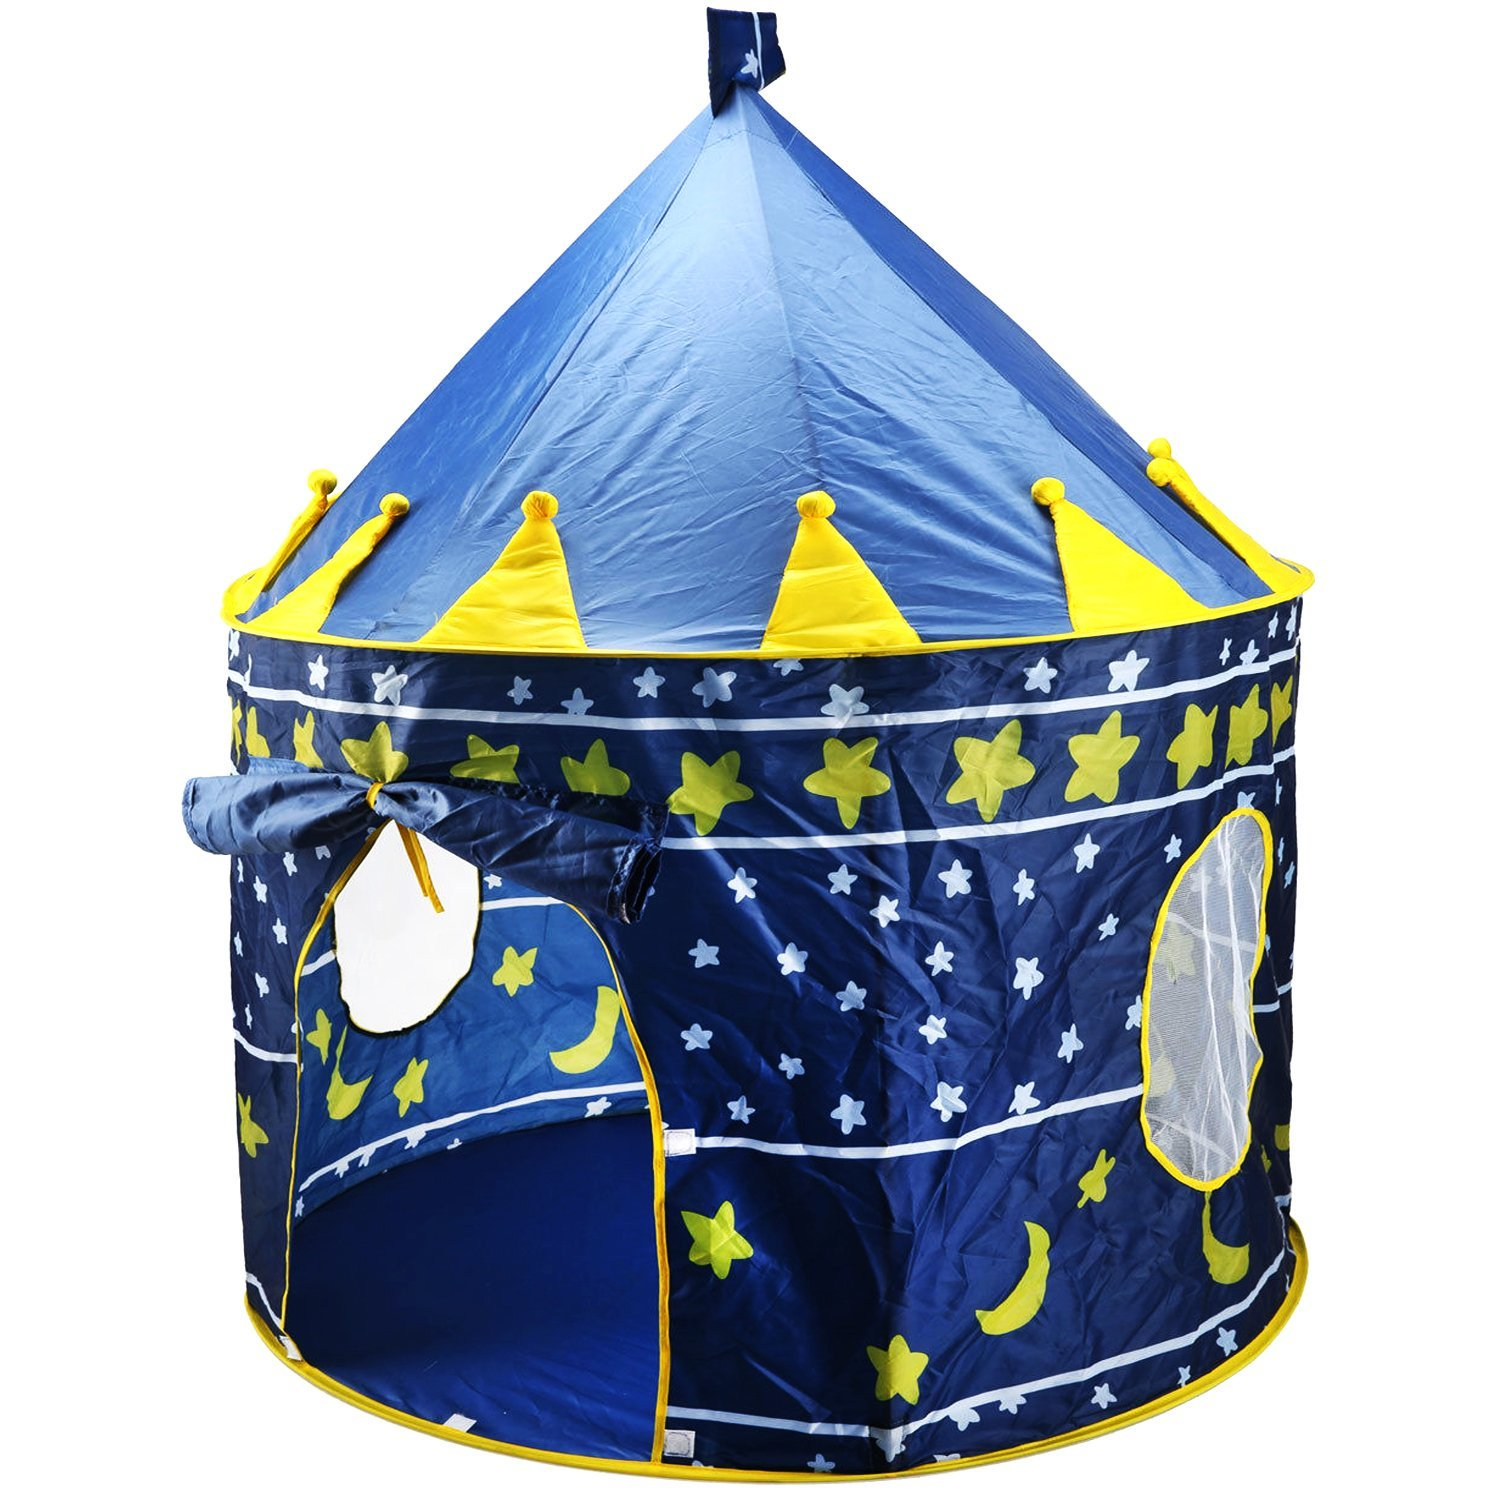 Children Play Tent Boys Girls Prince House Indoor Outdoor Blue Foldable Tent with Case by Creatov  sc 1 st  Walmart : play tents for boys - memphite.com